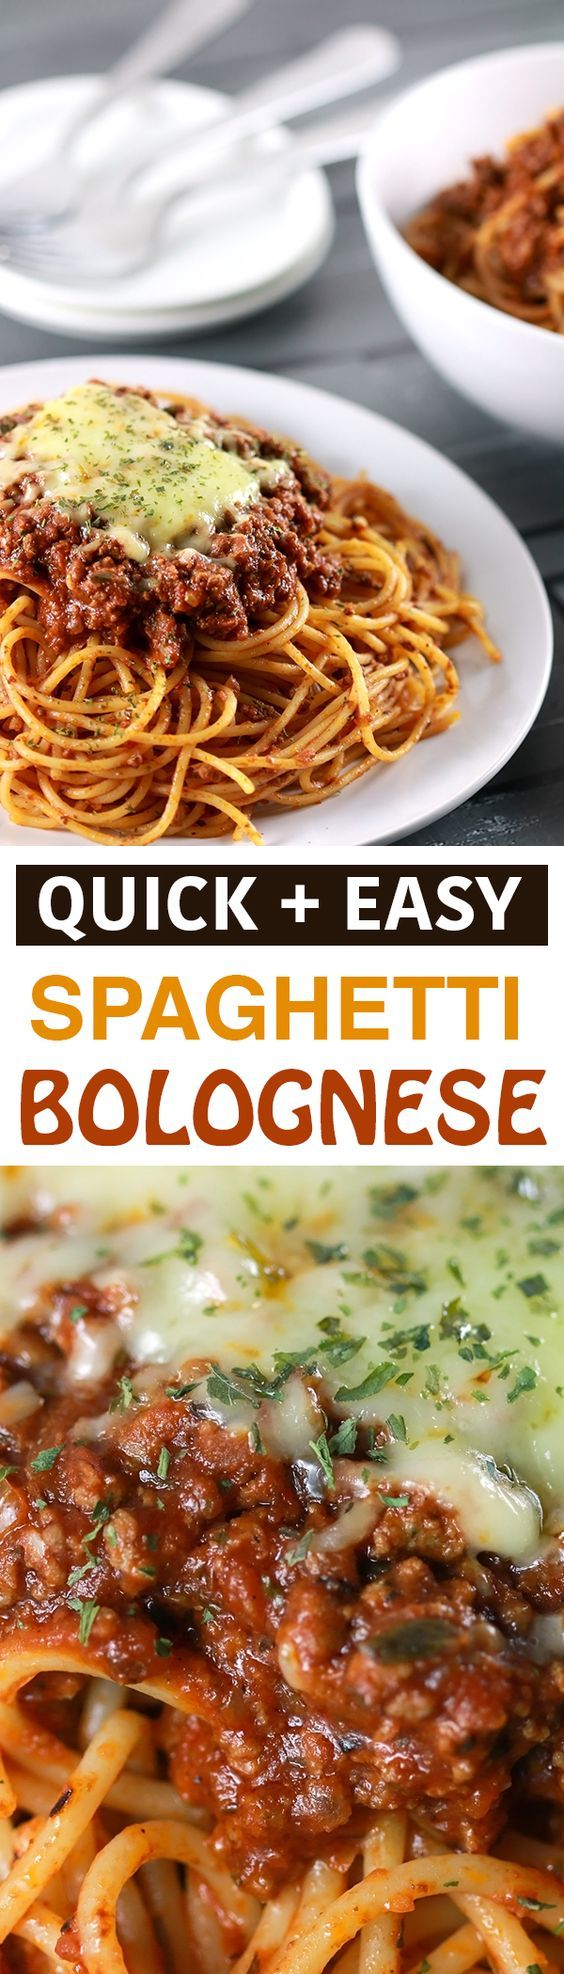 If there is one recipe for Spaghetti Bolognese that you need to know, this is it! You'll be amazed that this simple recipe can create such a tasty pasta!   ScrambledChefs.com